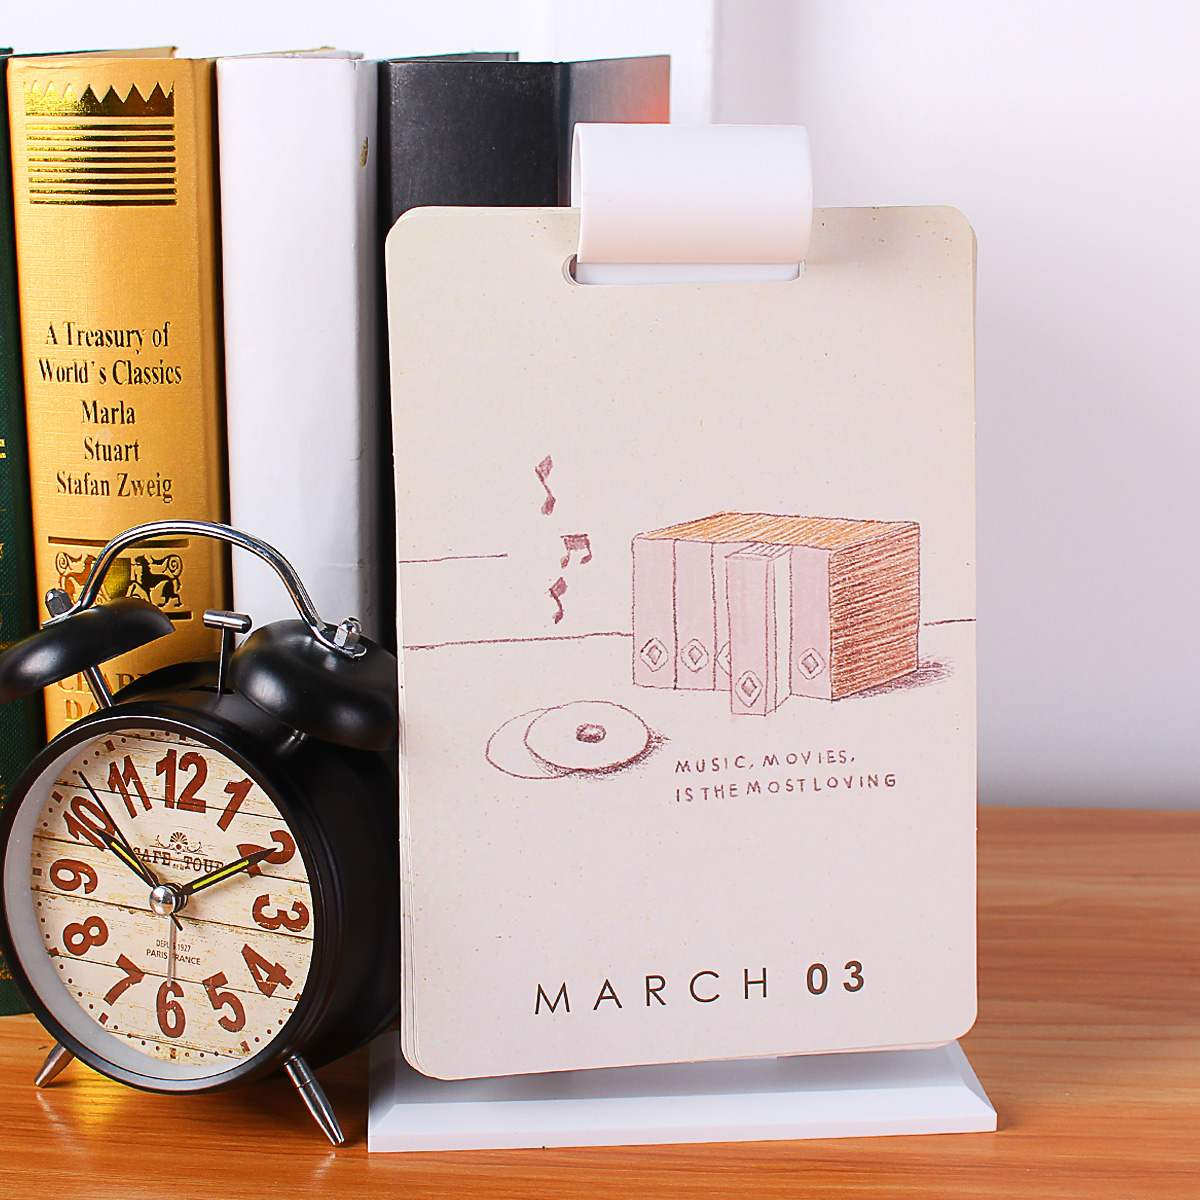 Calendars, Planners & Cards 2019 Cartoon Pig Kraft Paper Calendar Diy Desktop Calendar Agenda Organizer Daily Schedule Planner 2018.08~2019.12 Office & School Supplies